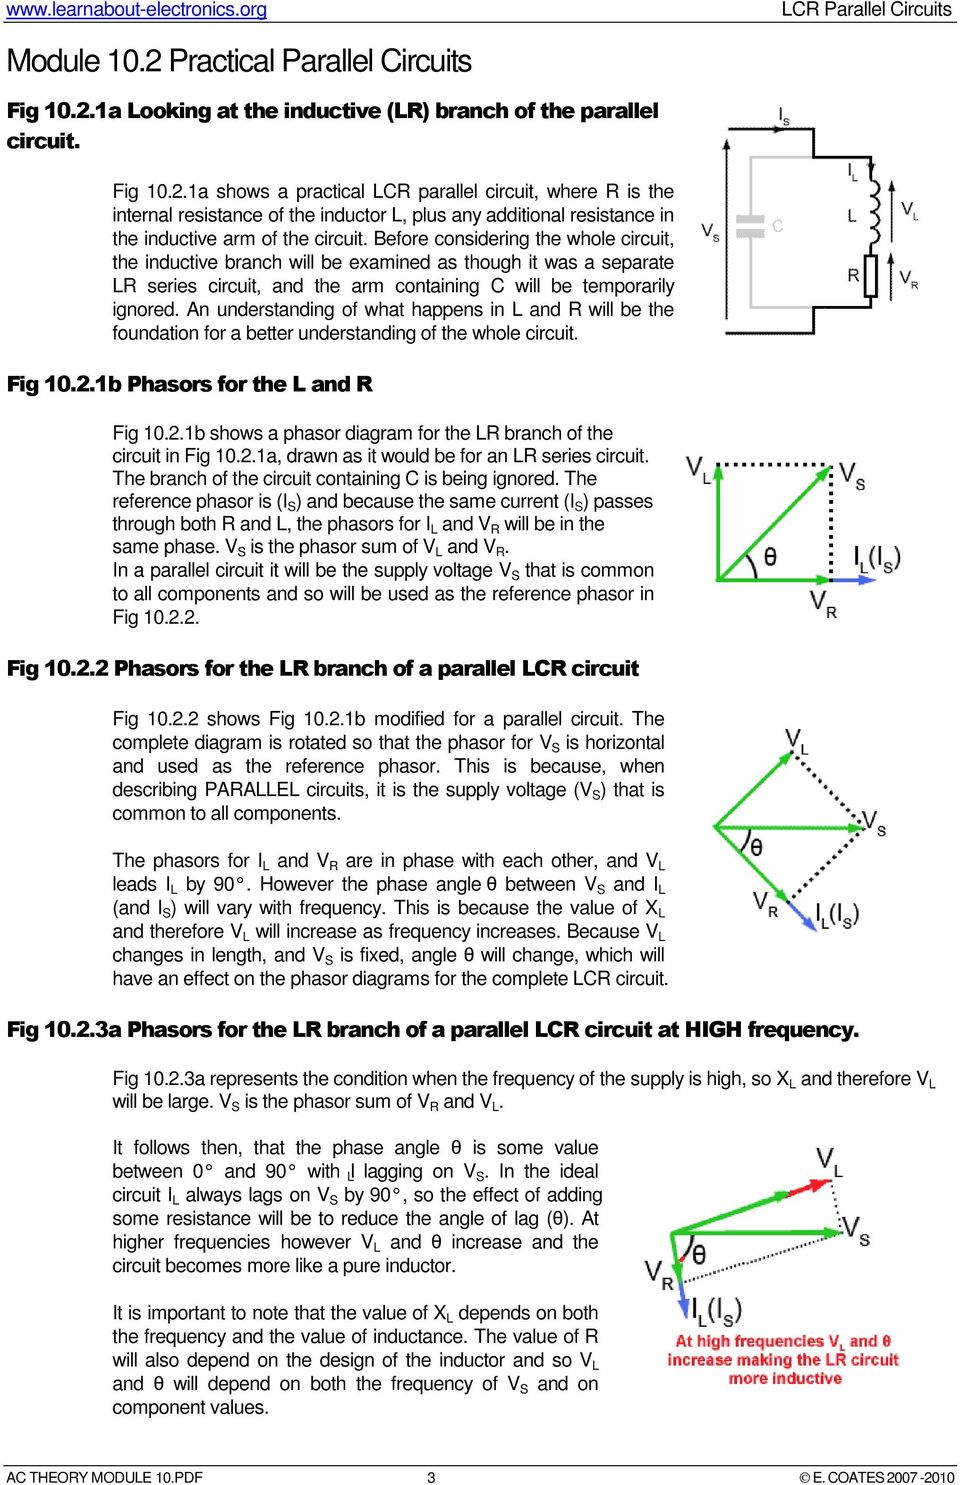 Lcr Parallel Circuits Pdf What Are An Understanding Of Happens In L And R Will Be The Foundation For A Better